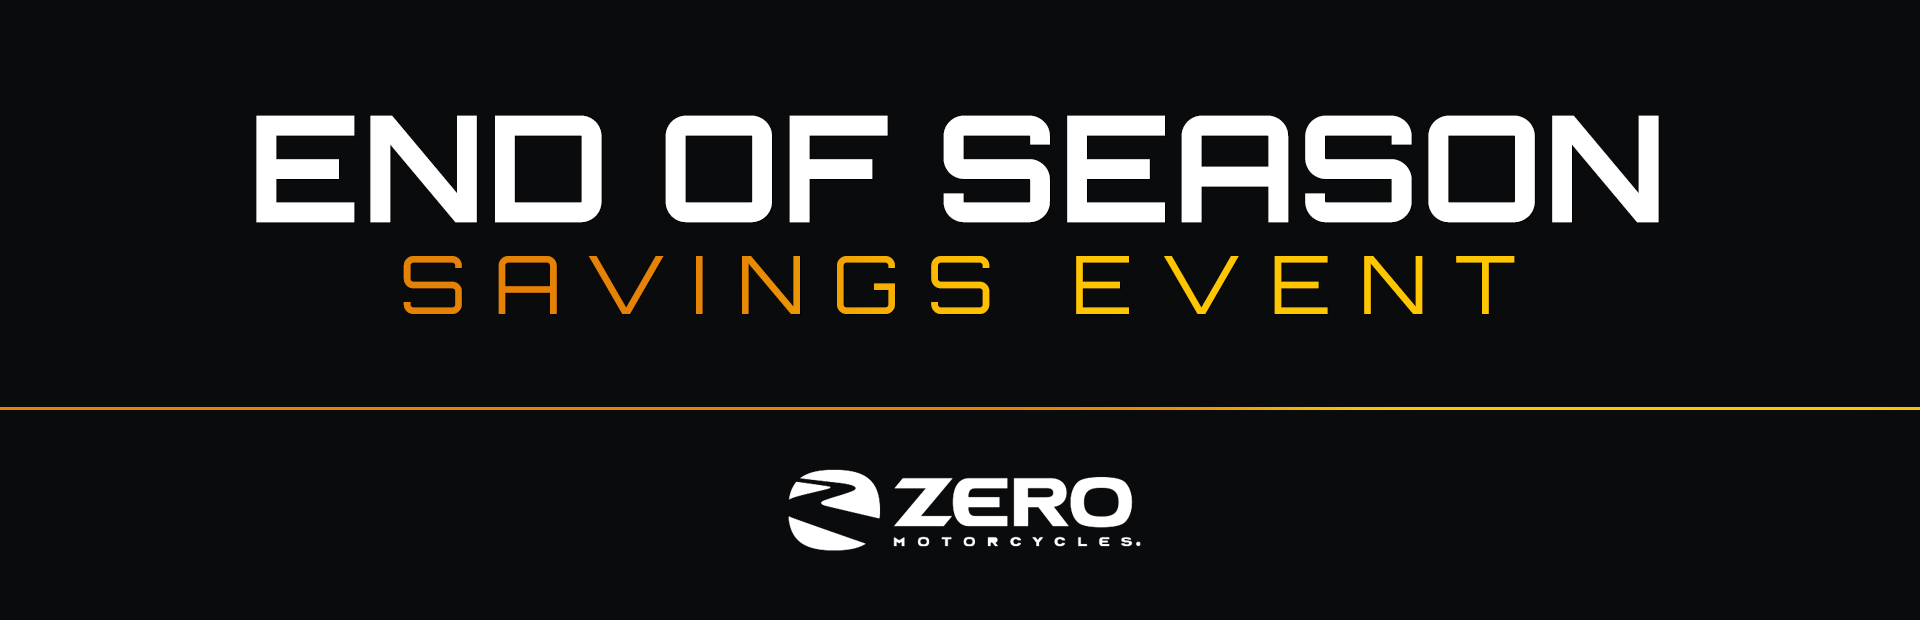 ZERO™: End of Season Savings Event